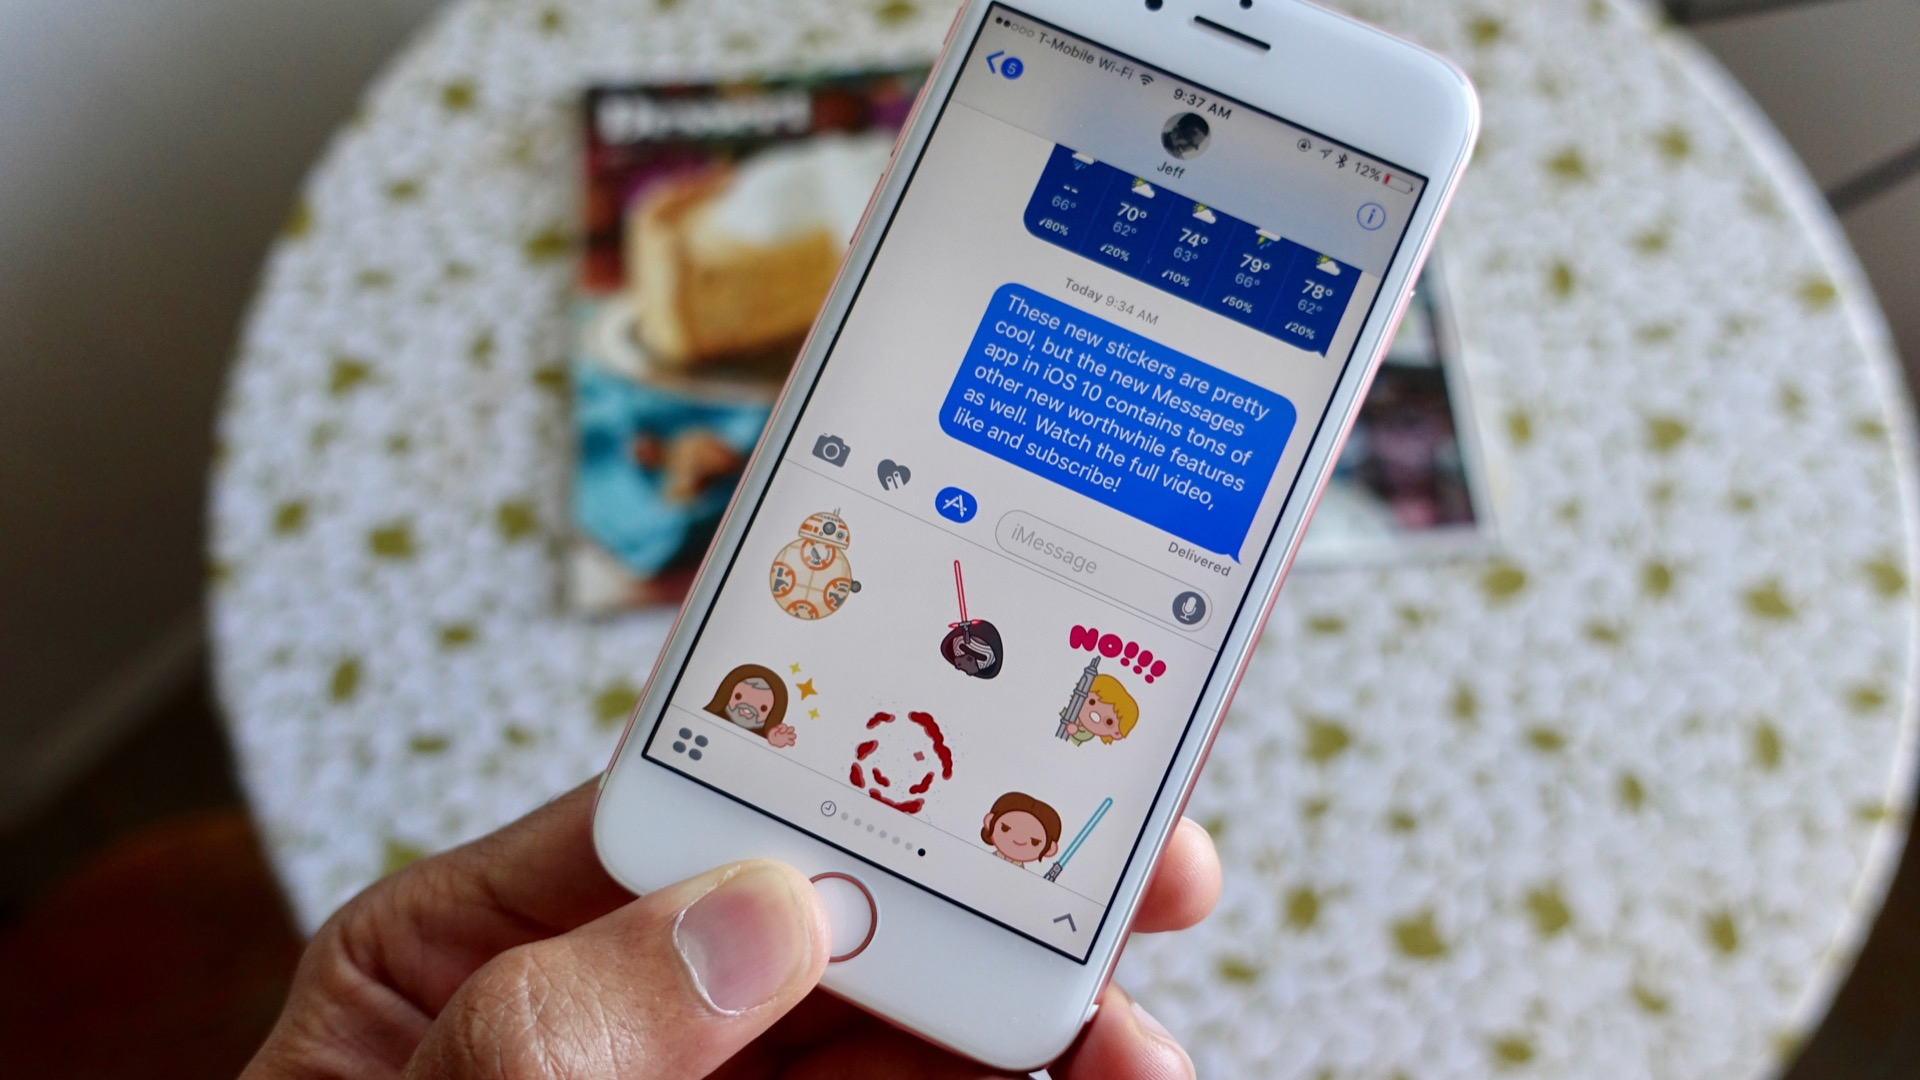 apple-isnt-intercepting-all-your-imessage-contacts-for-police